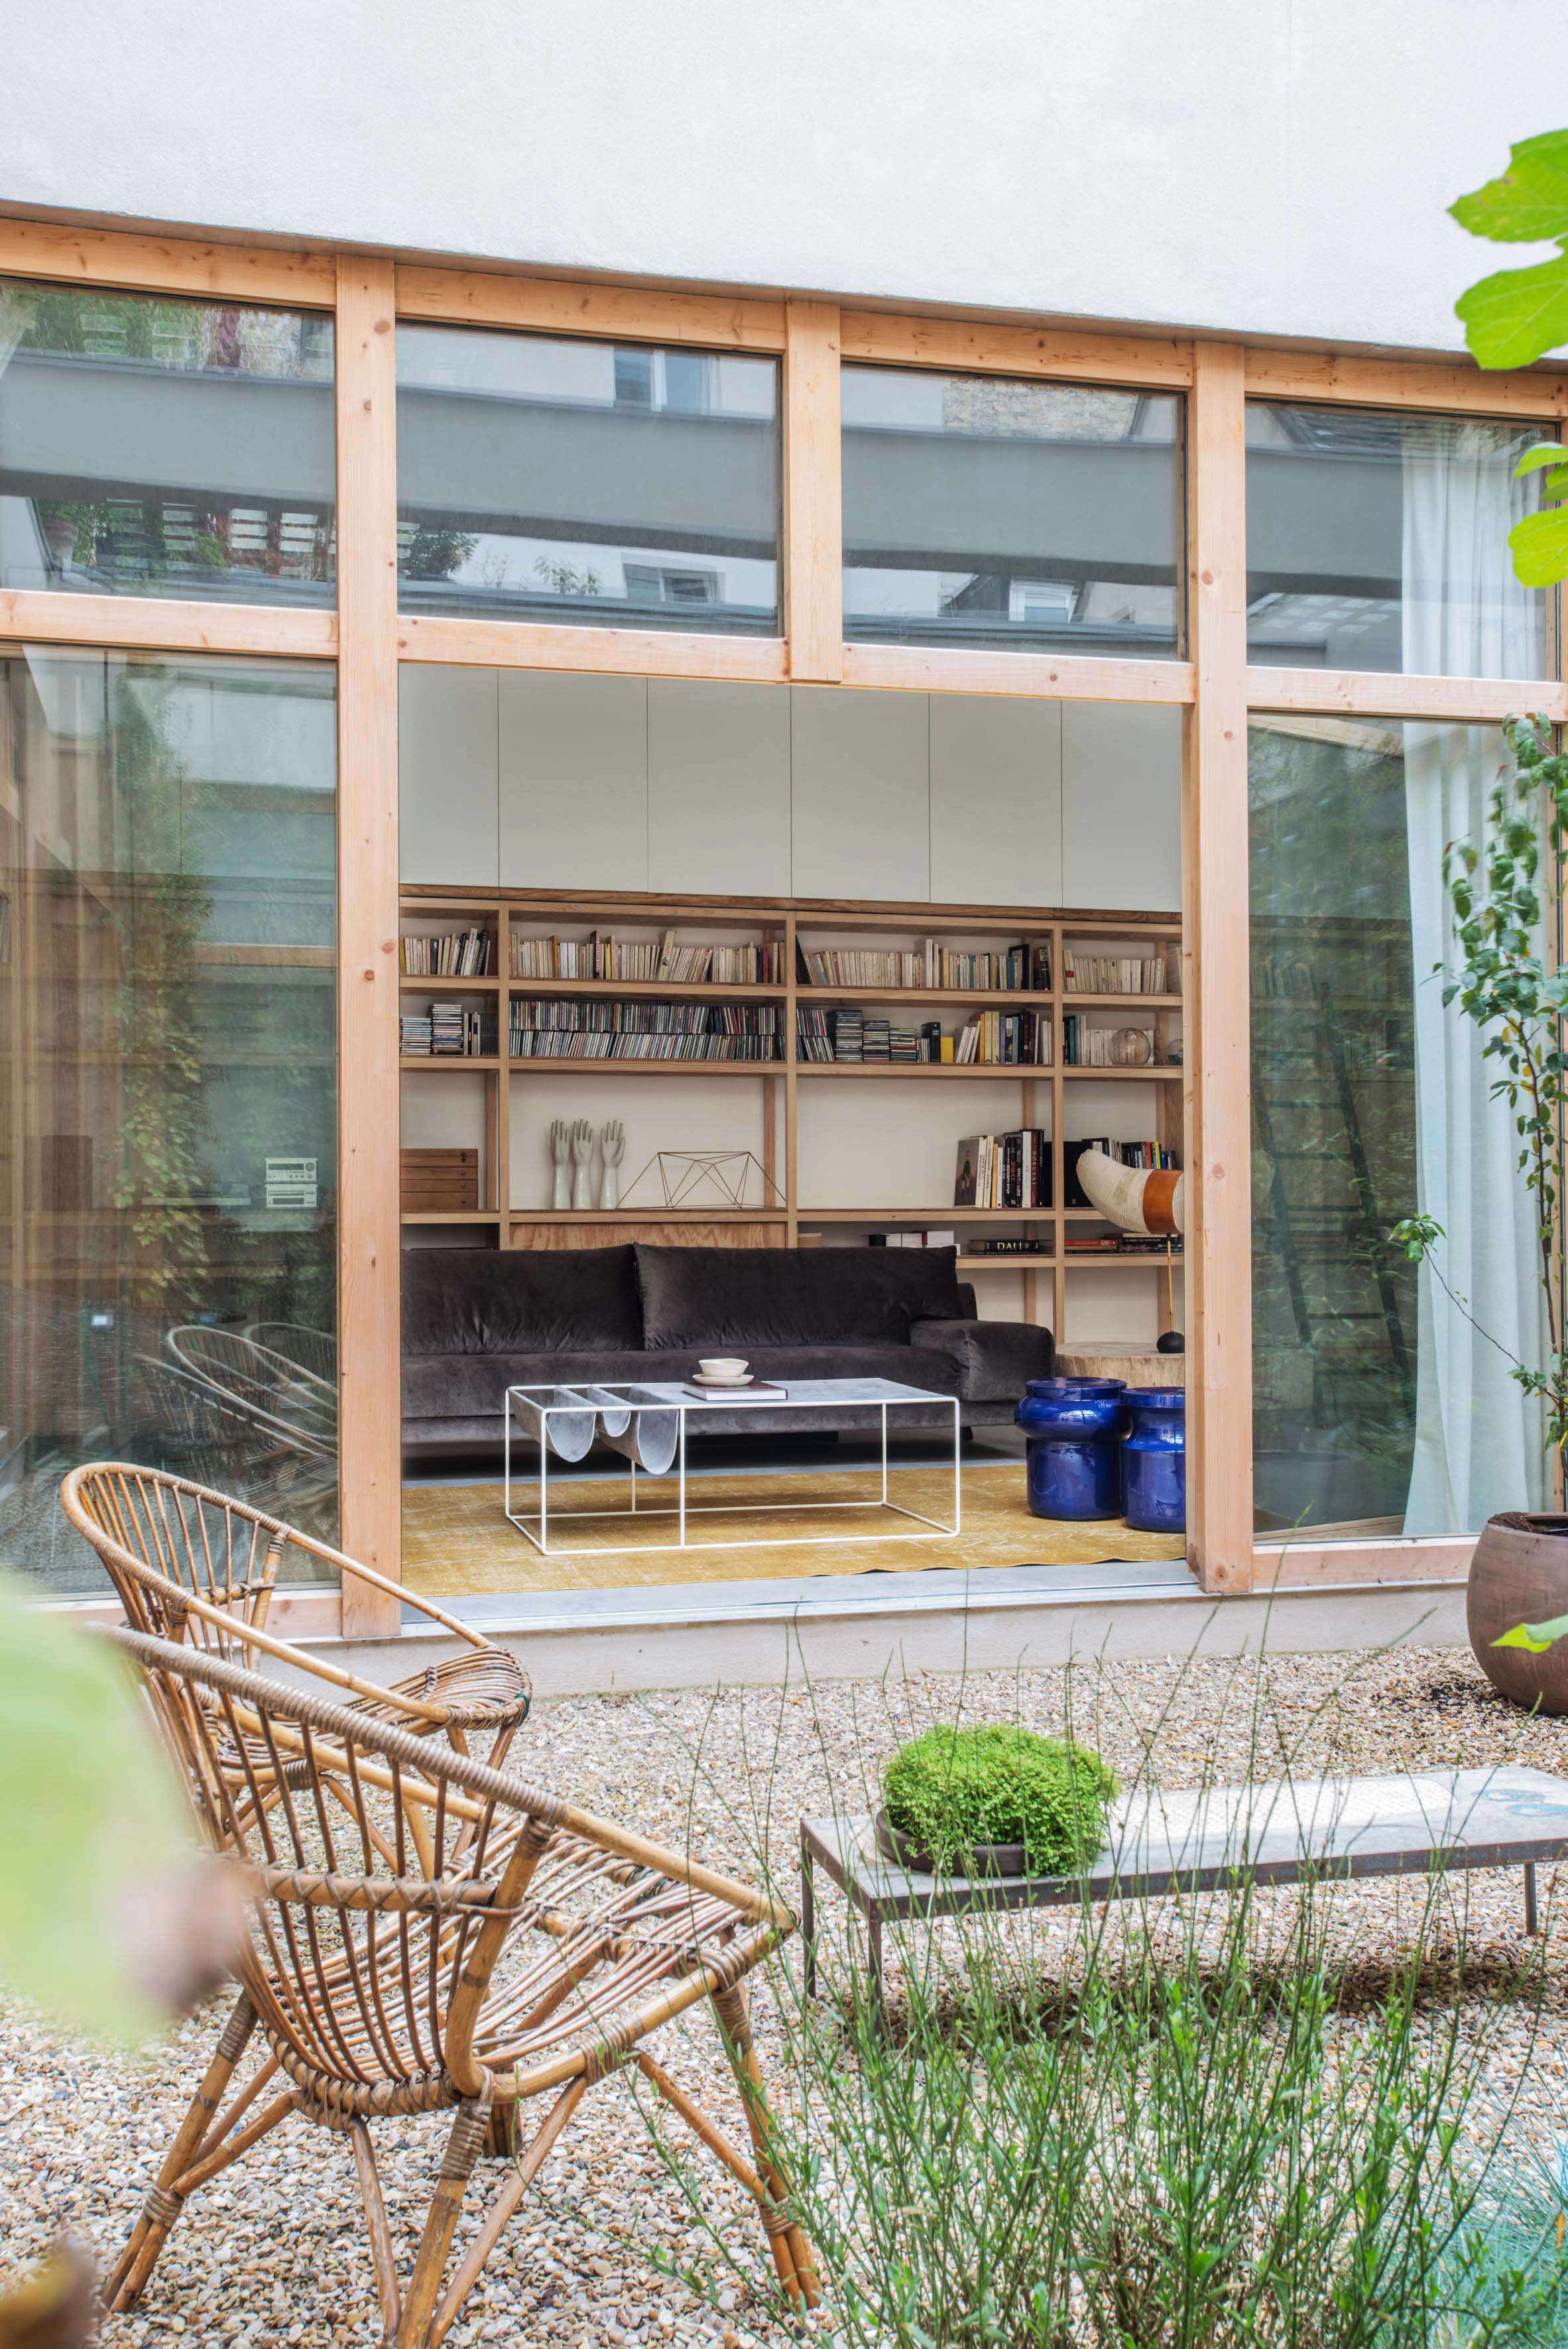 Indoor outdoor living in paris a warehouse converted into a loft built around a courtyard